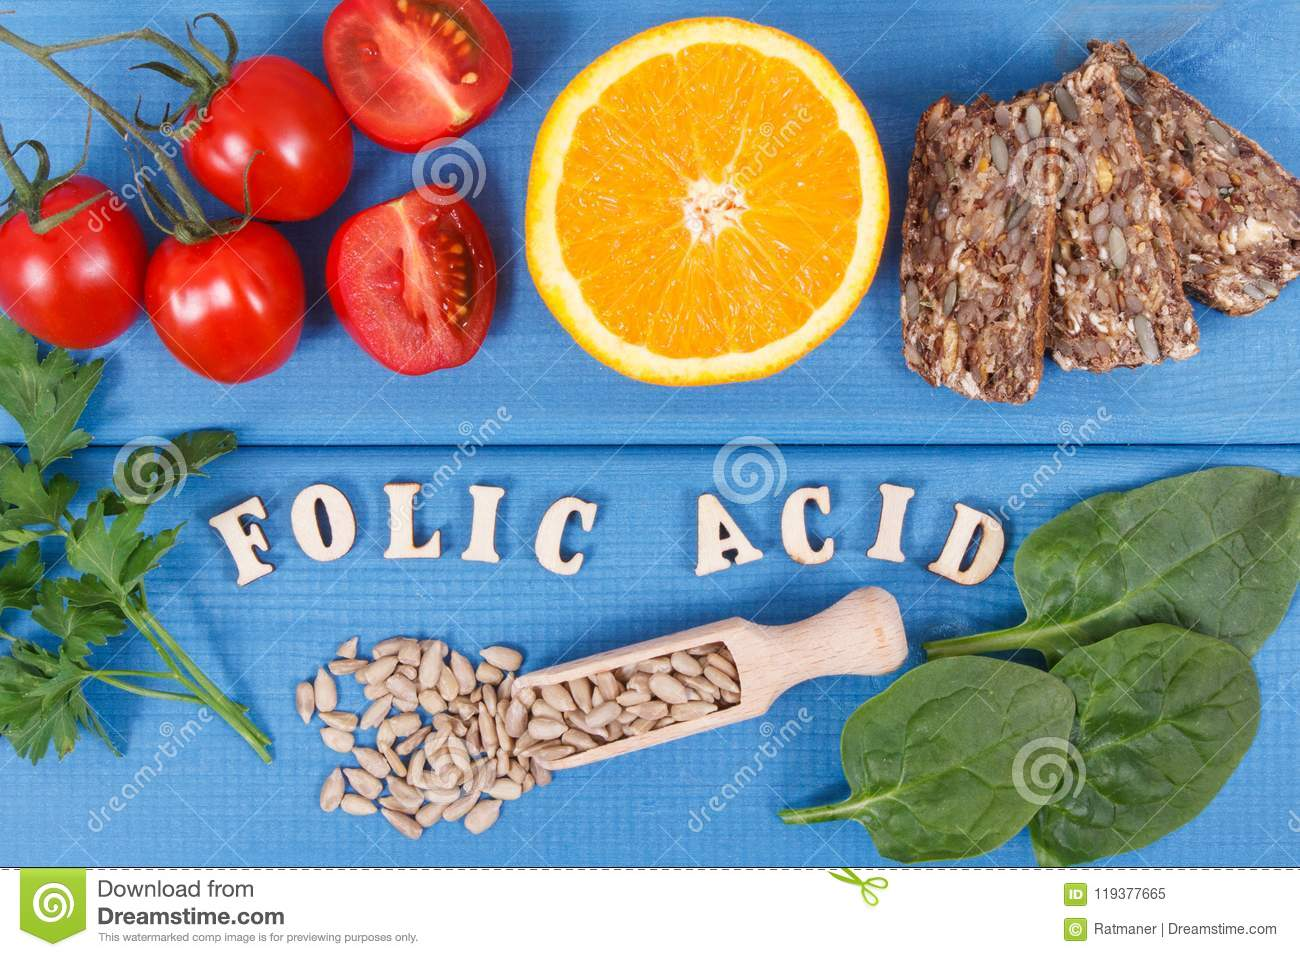 Inscription folic acid with healthy nutritious food as source minerals, vitamin B9 and dietary fiber